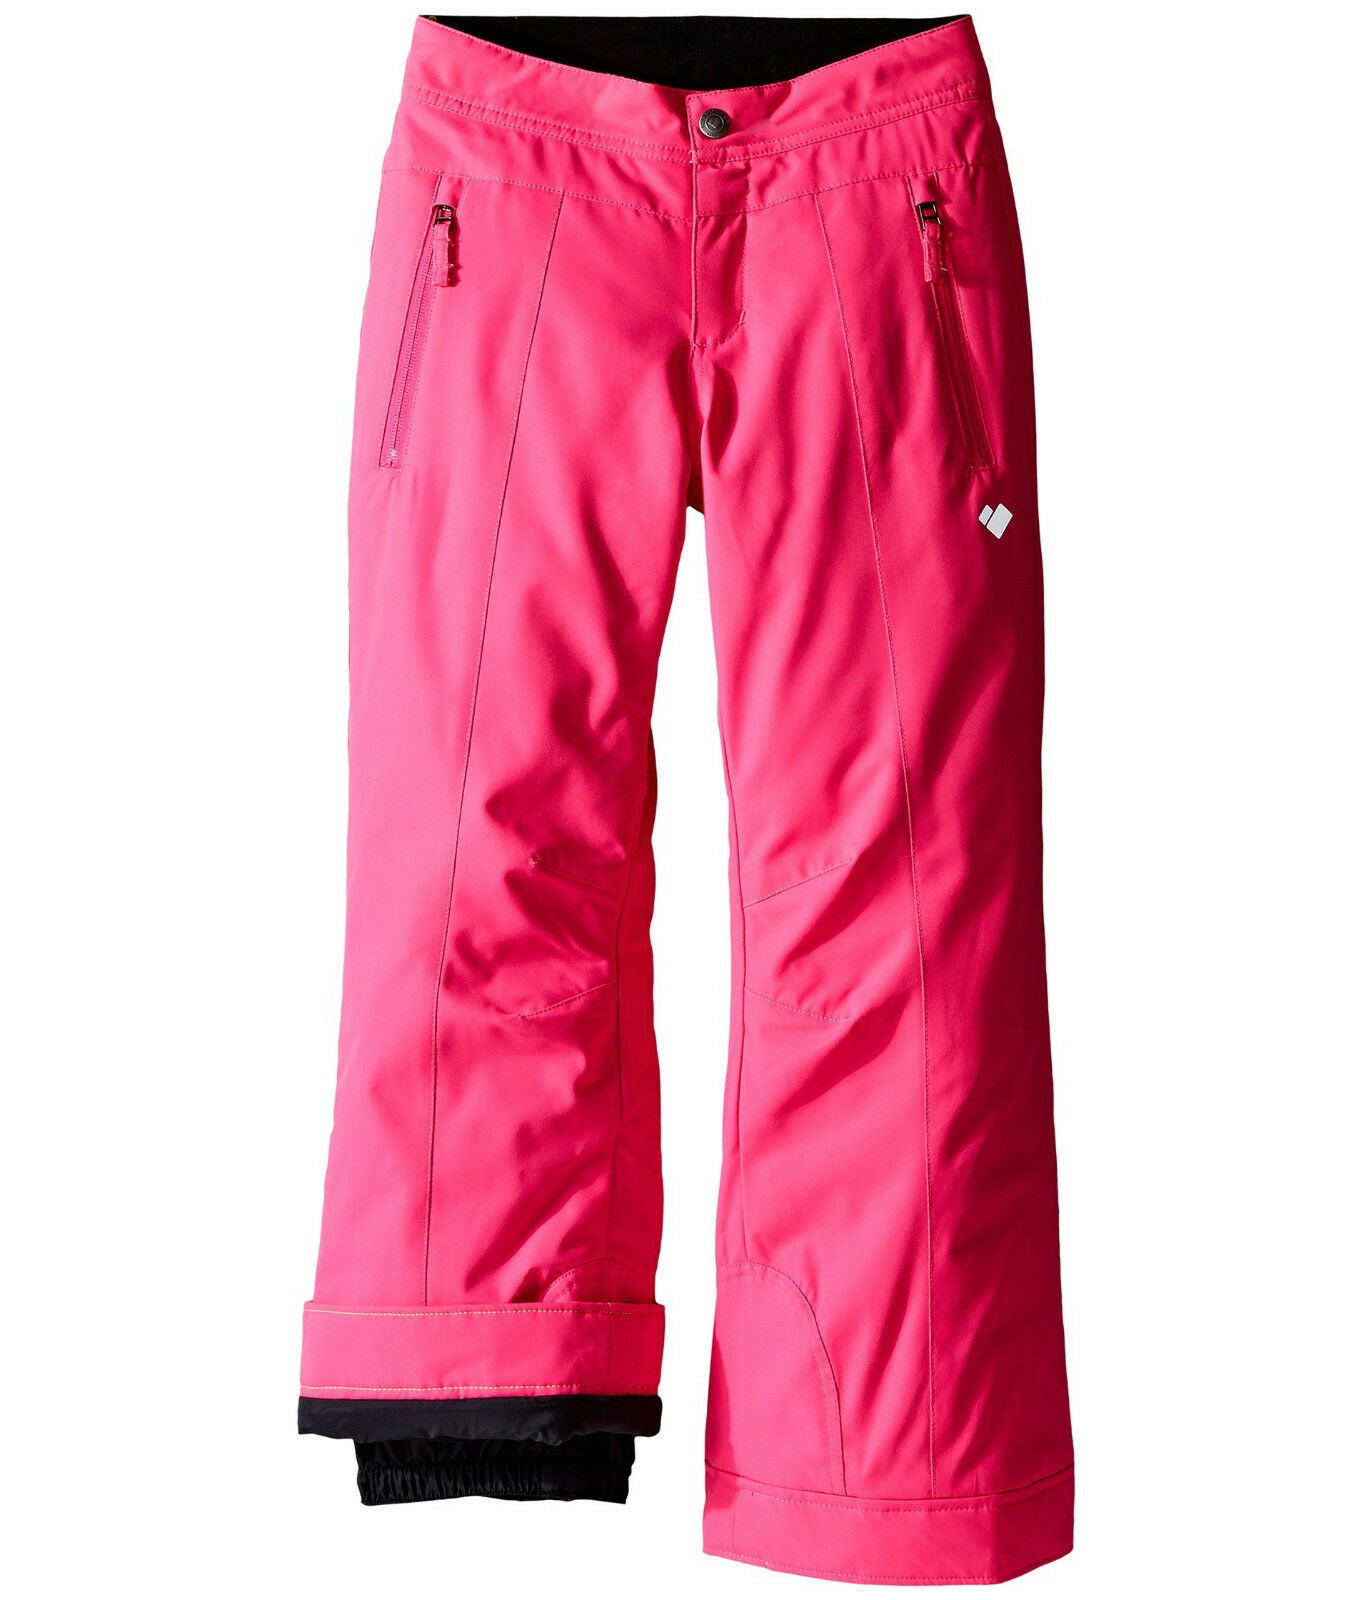 Obermeyer Girls Elsie Insulated Ski Snowboarding Pants, Snow Pant, Pant, Pant, Größe XL (18) e1e20d